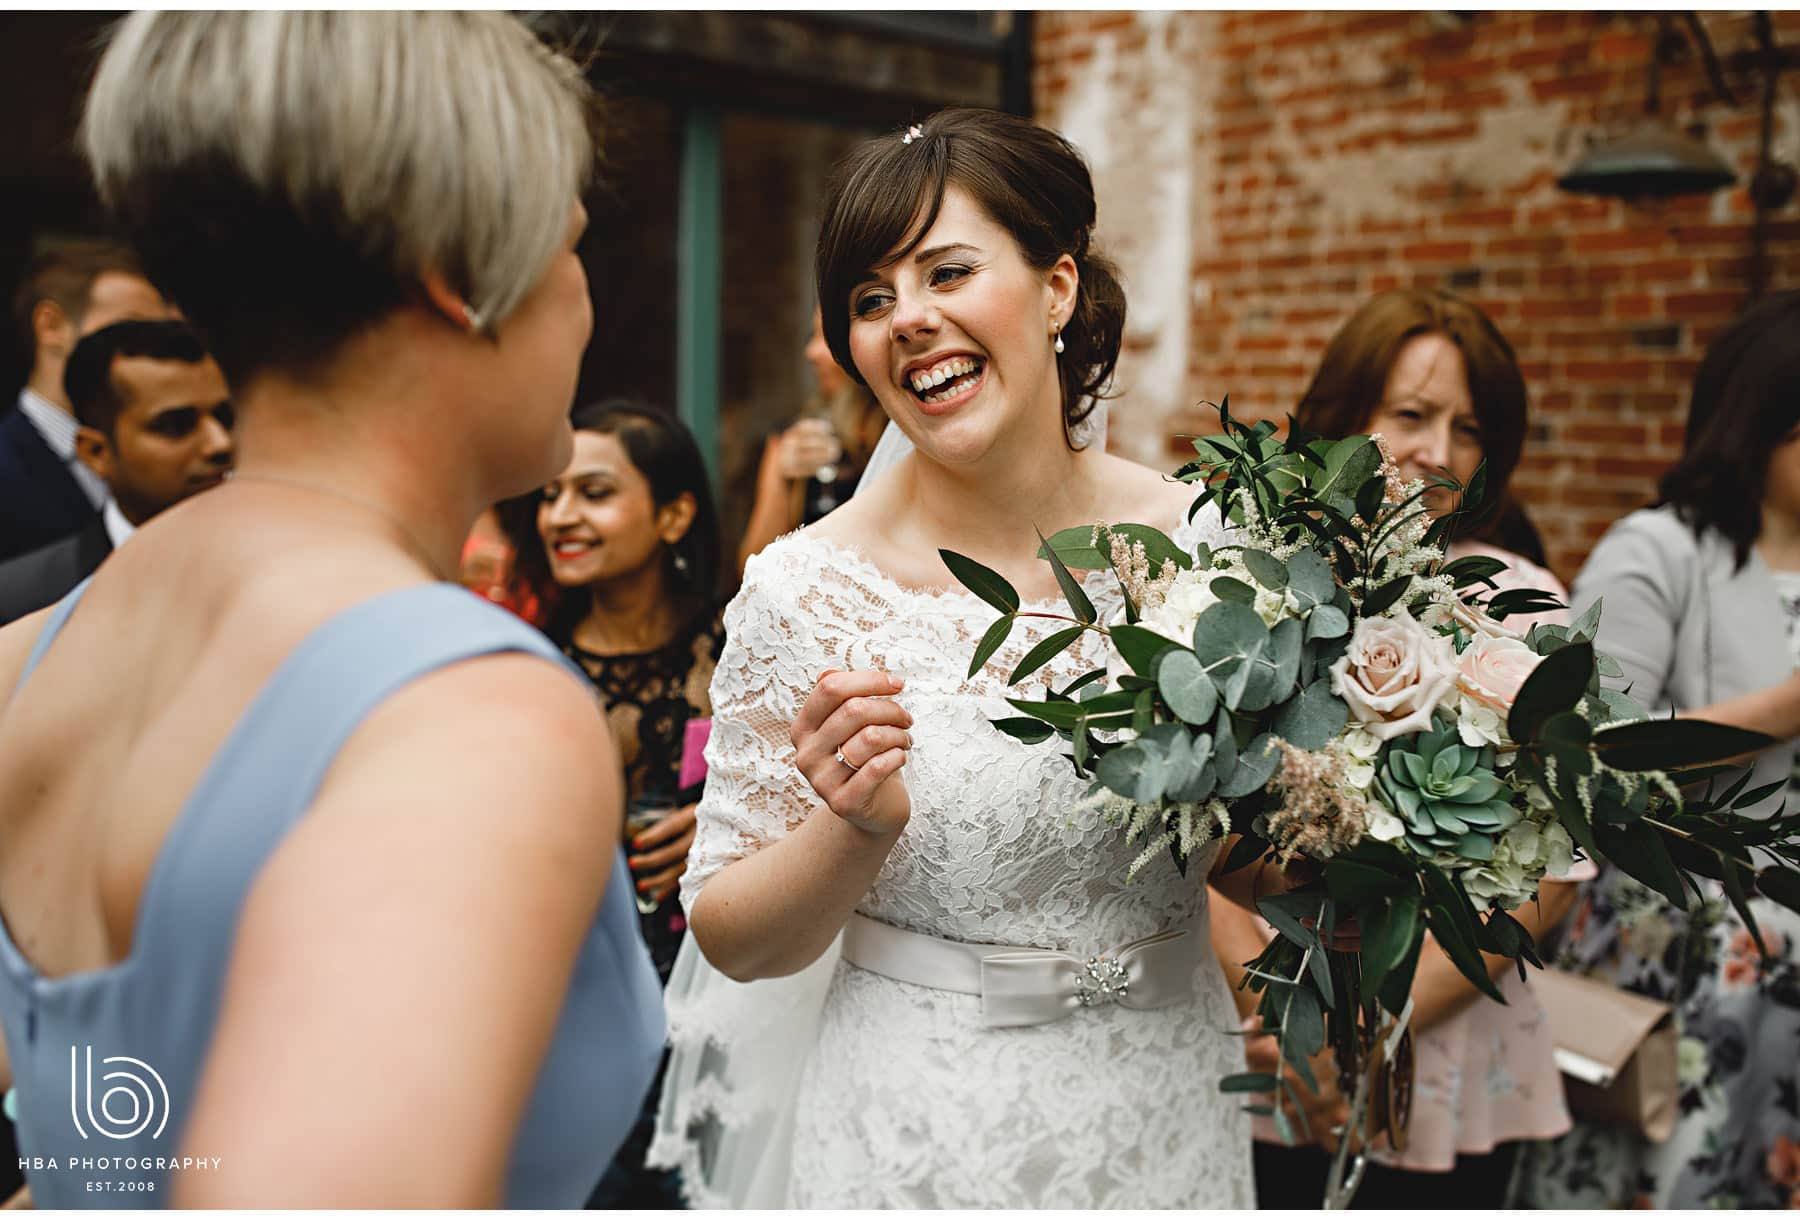 the bride laughing with guests